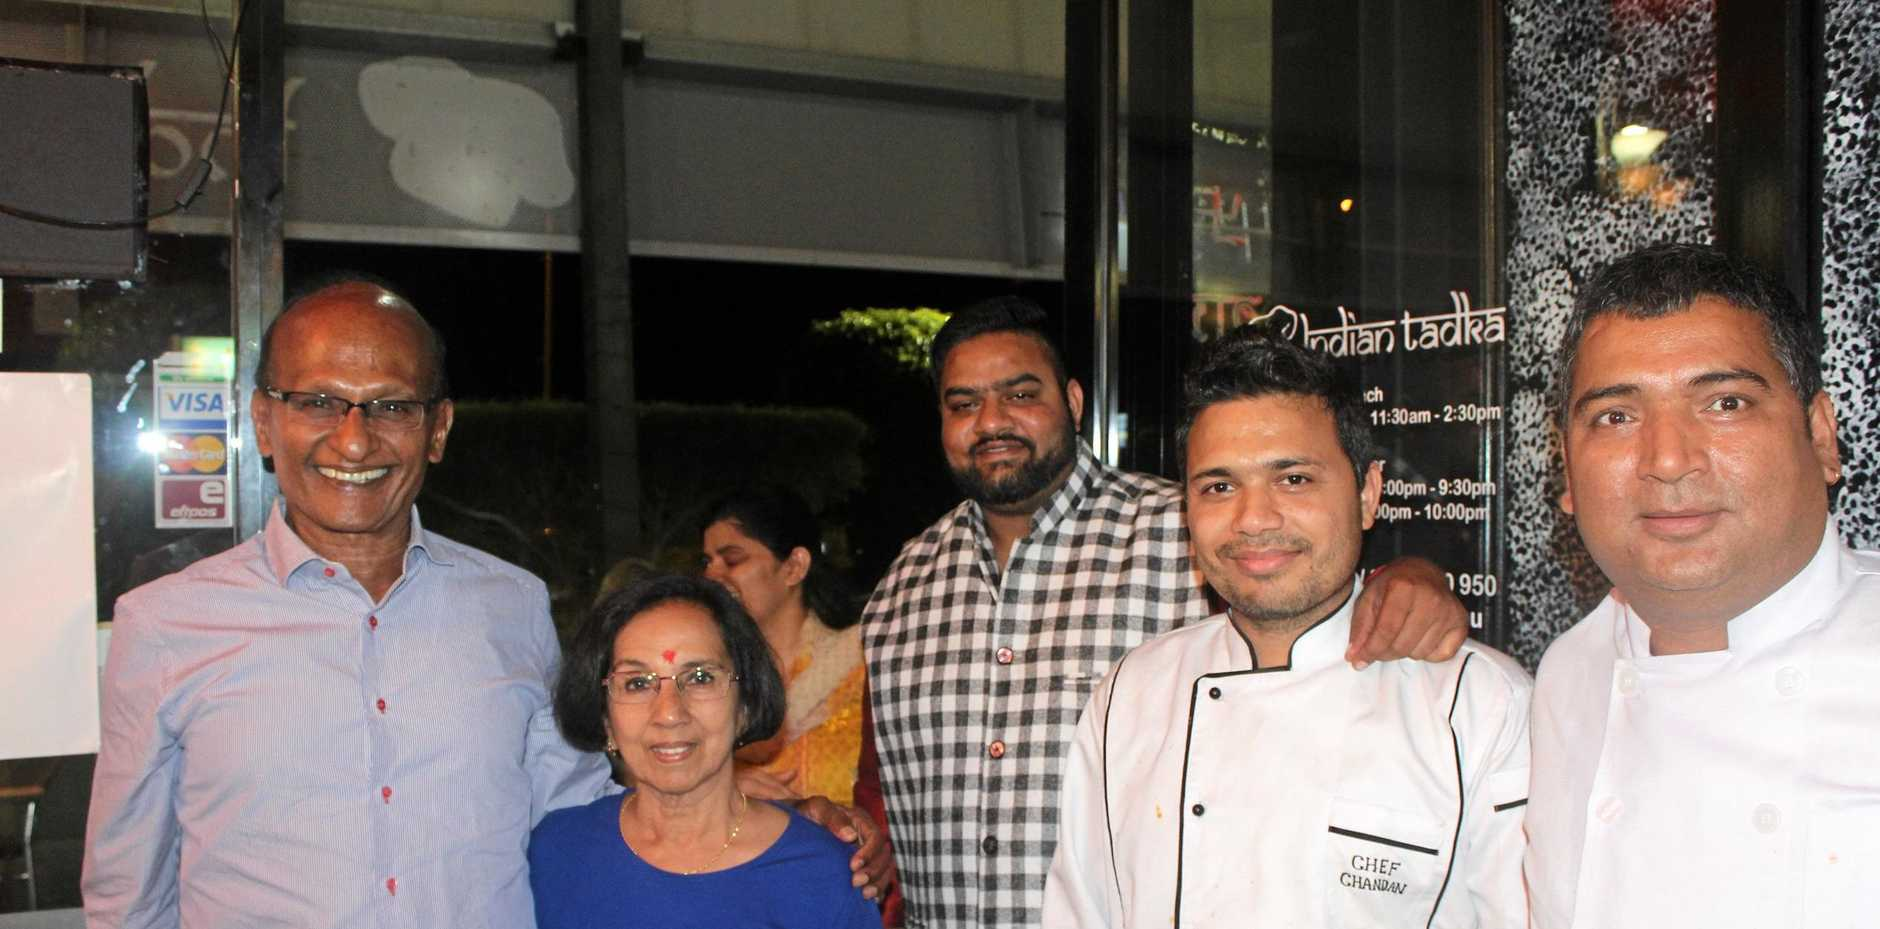 Augustine Heights' Indian Tadka restaurant held its grand opening at the weekend. L-R: Springfield Land Corporation chairman Maha Sinnathamby with wife, Yoga, Indian Tadka co-owner and manager Siddharath Tripathi, head chef and co-owner Chandan Singh and co-owner and chef Dhanpal Rana.